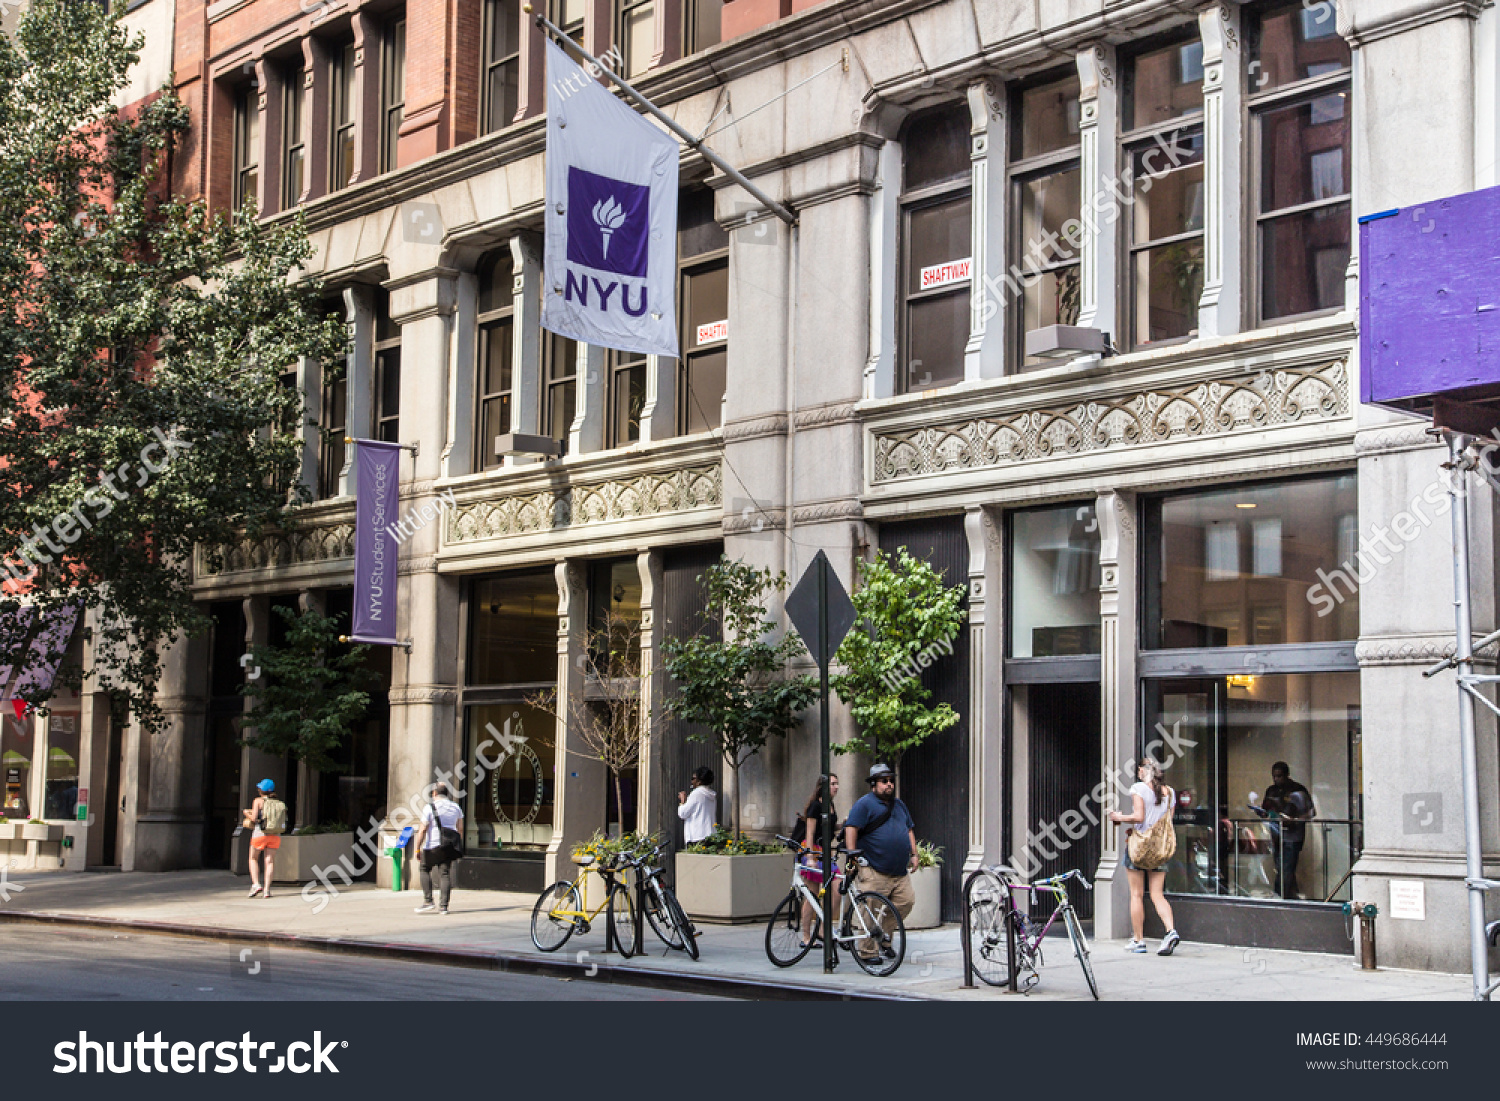 stock-photo-new-york-city-september-street-view-of-new-york-university-nyu-in-greenwich-village-449686444.jpg